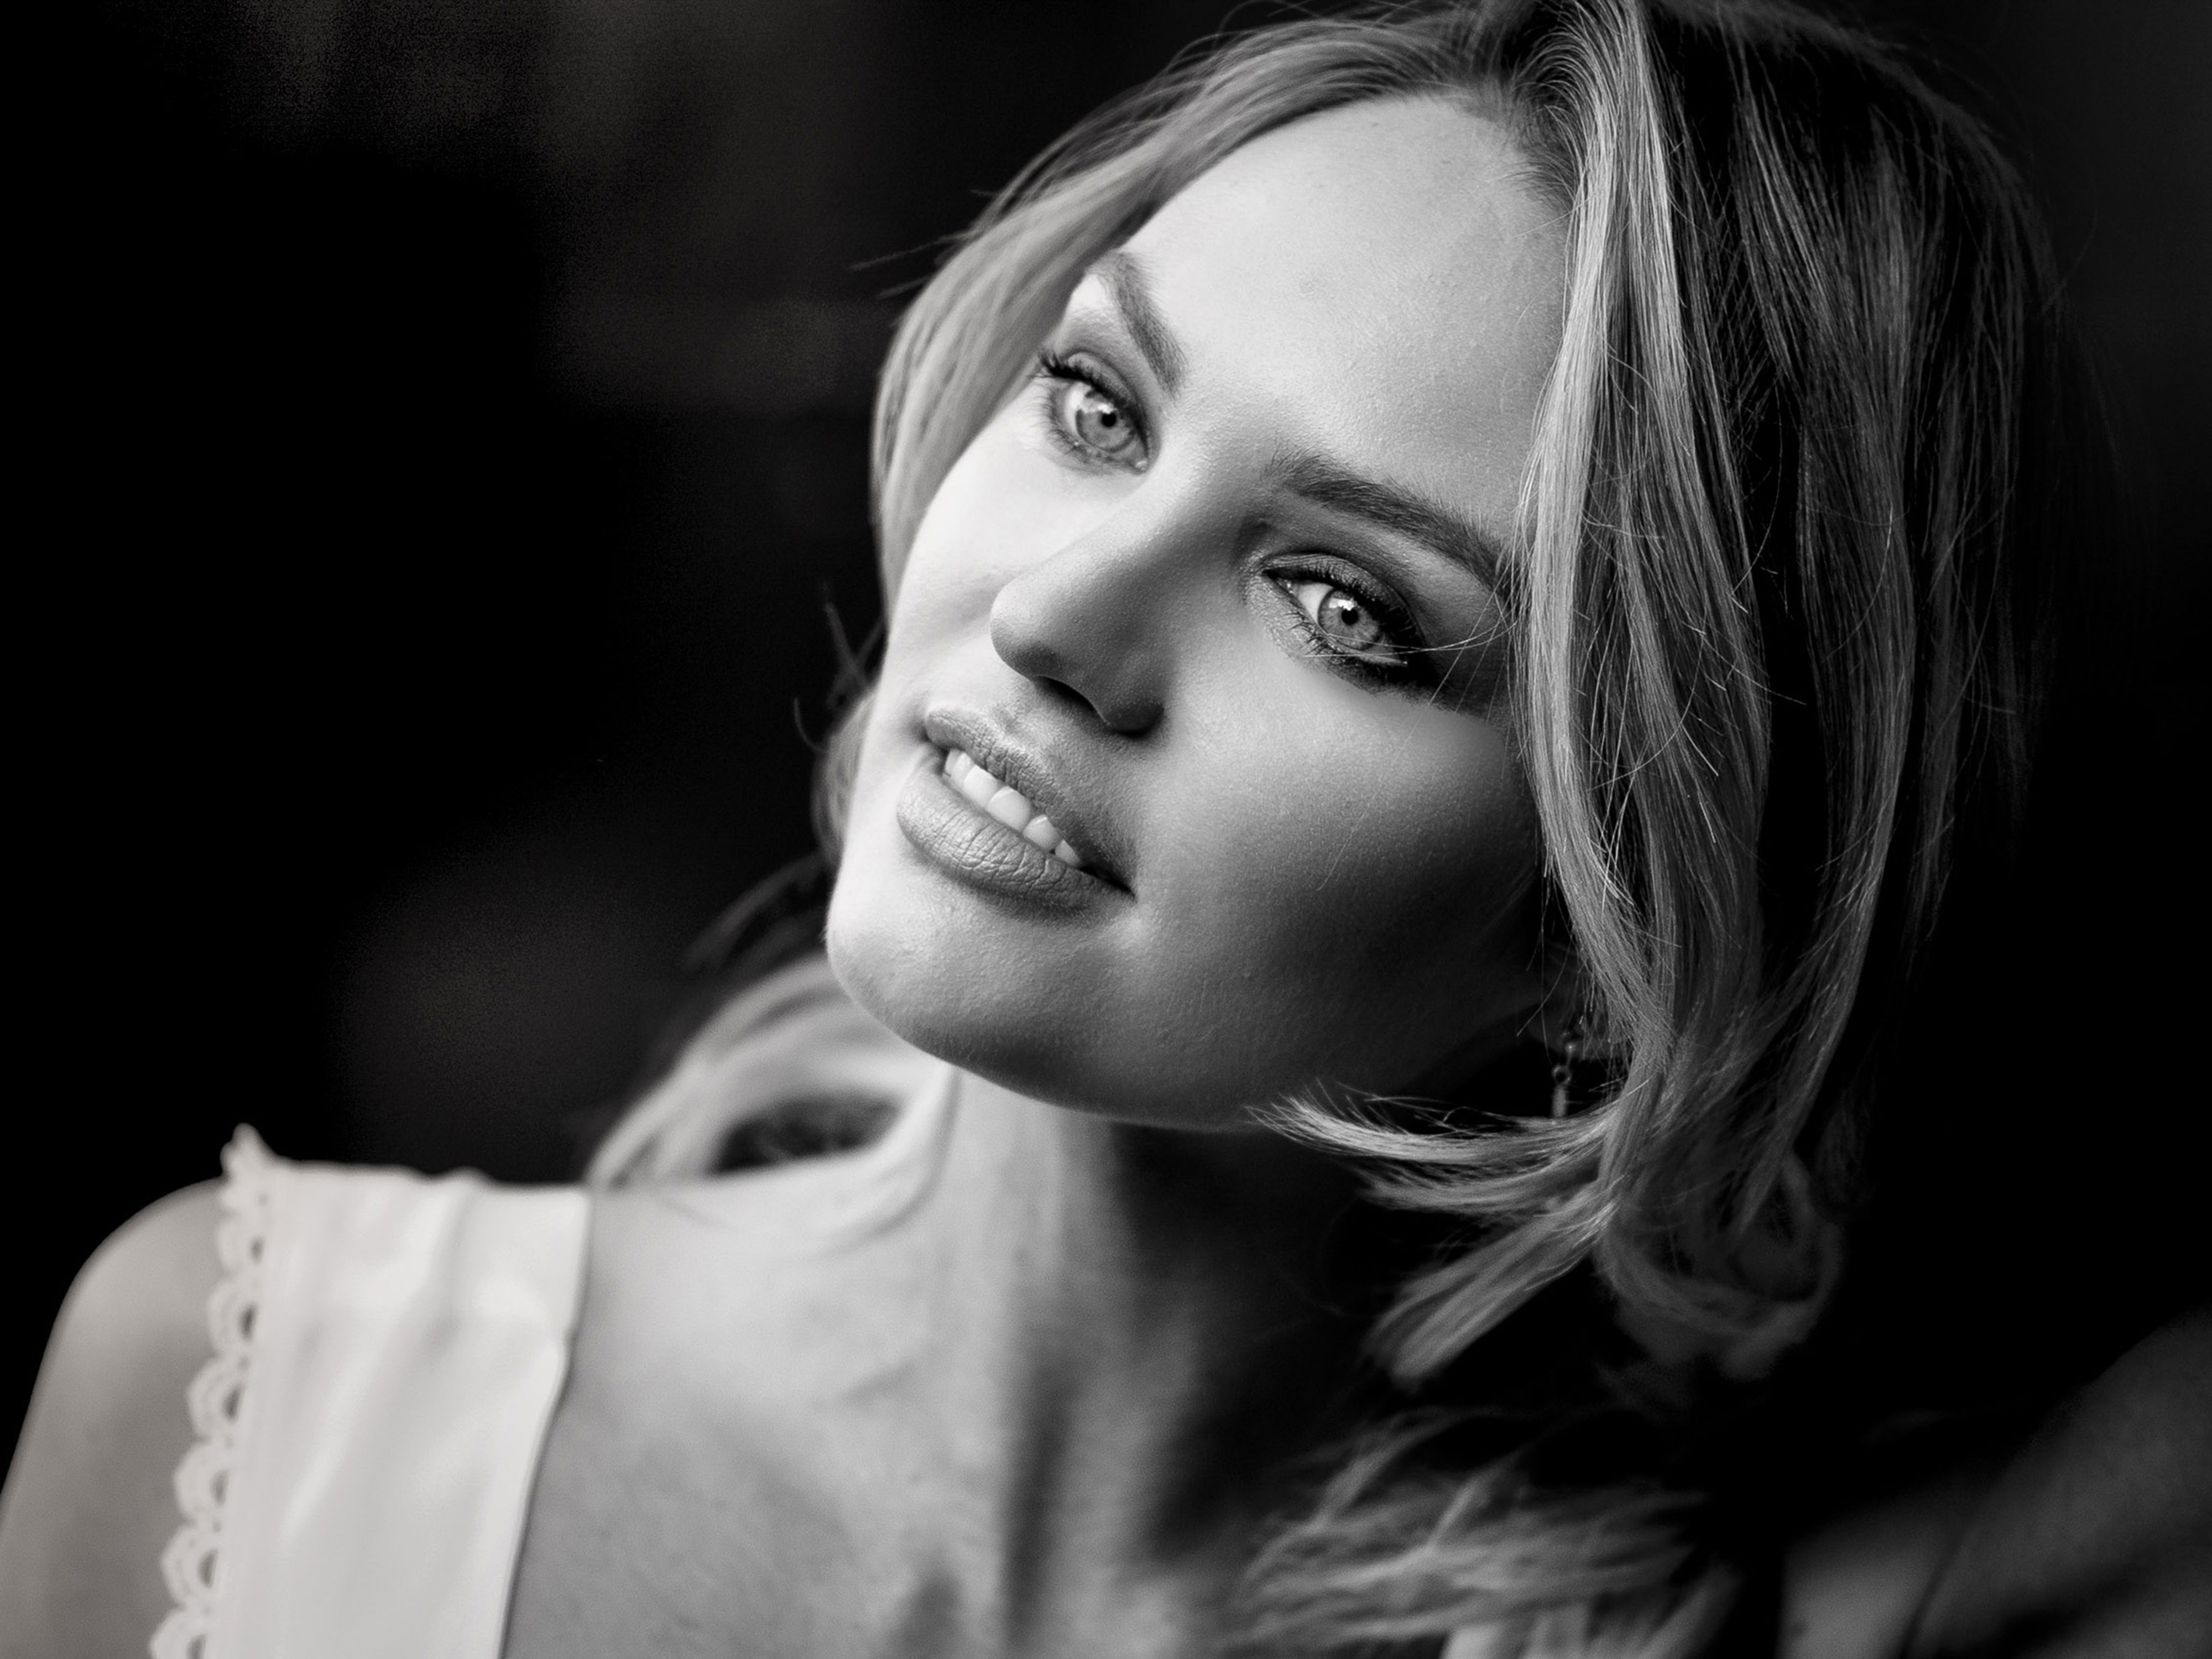 1080p Portrait Wallpaper: 1920x1080 Candice Swanepol Monochrome Portrait Laptop Full